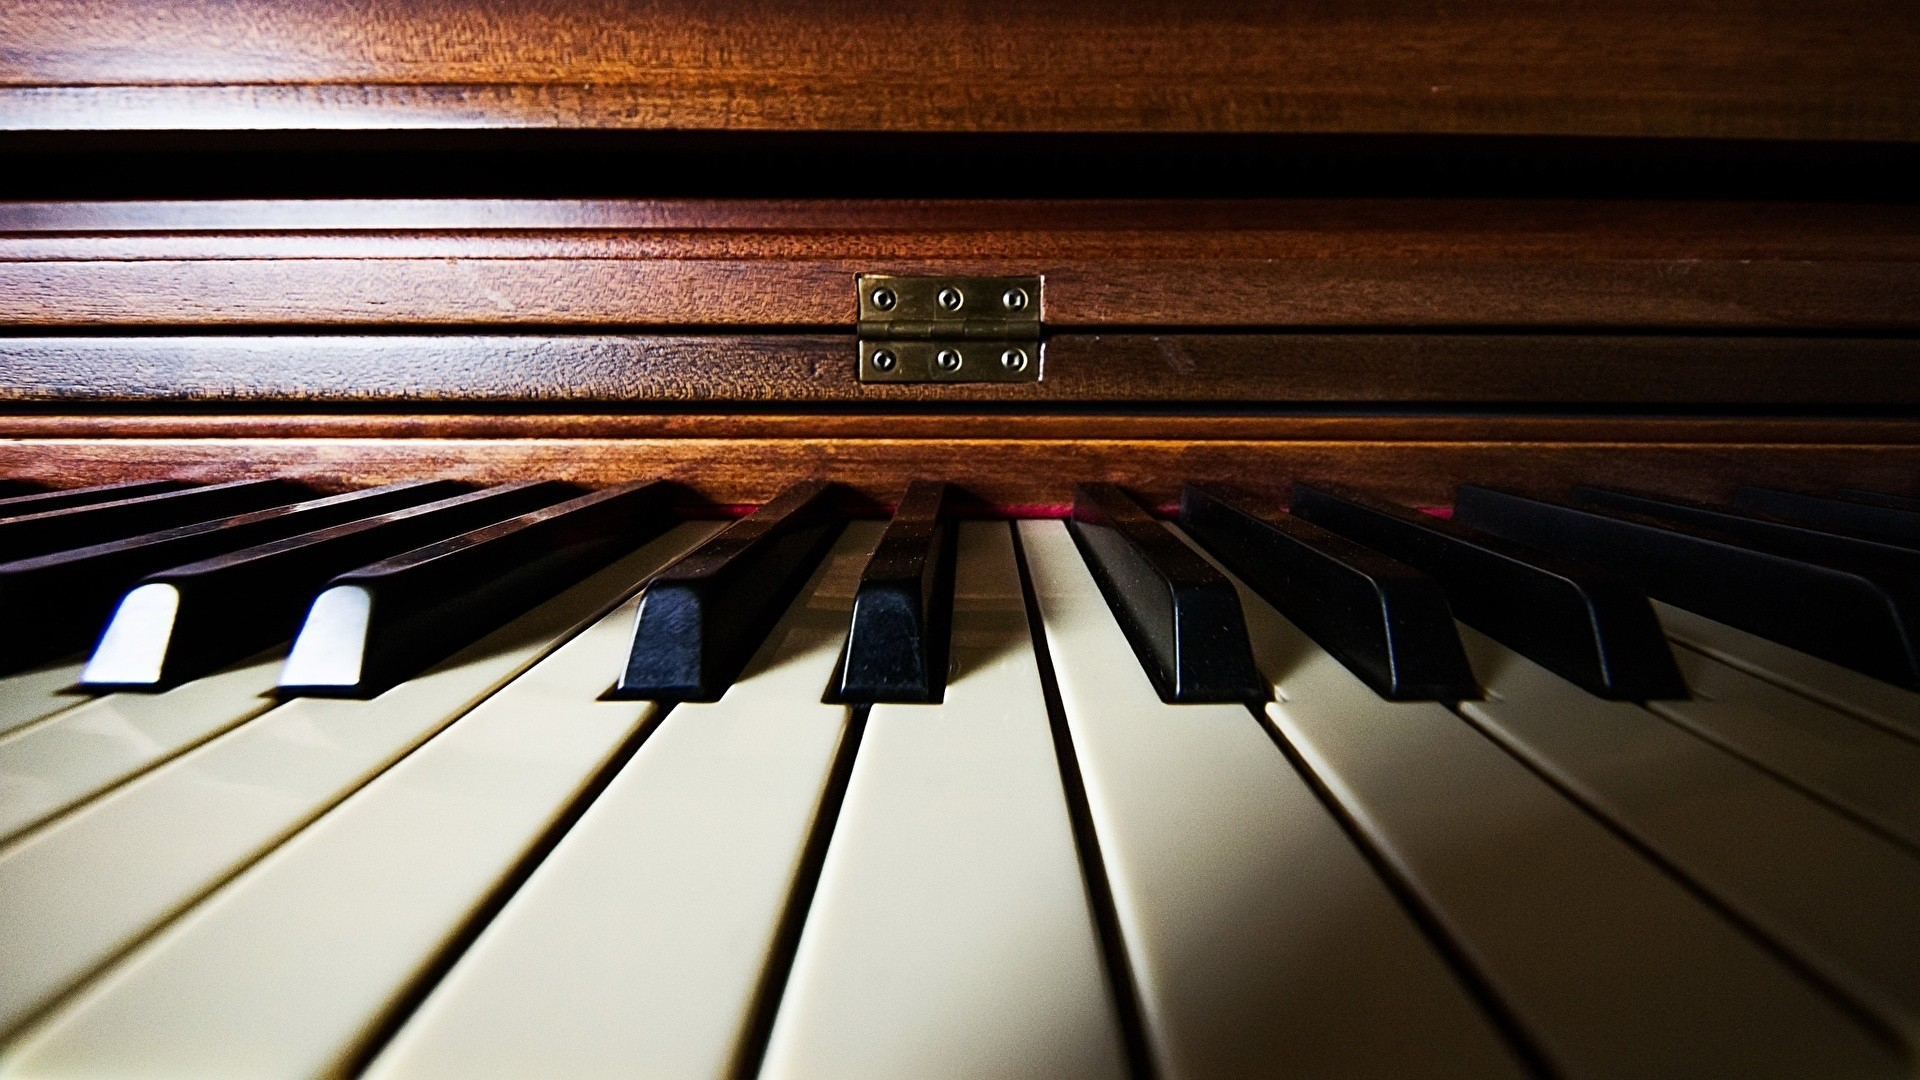 Piano Wallpapers 27 Images Things Category